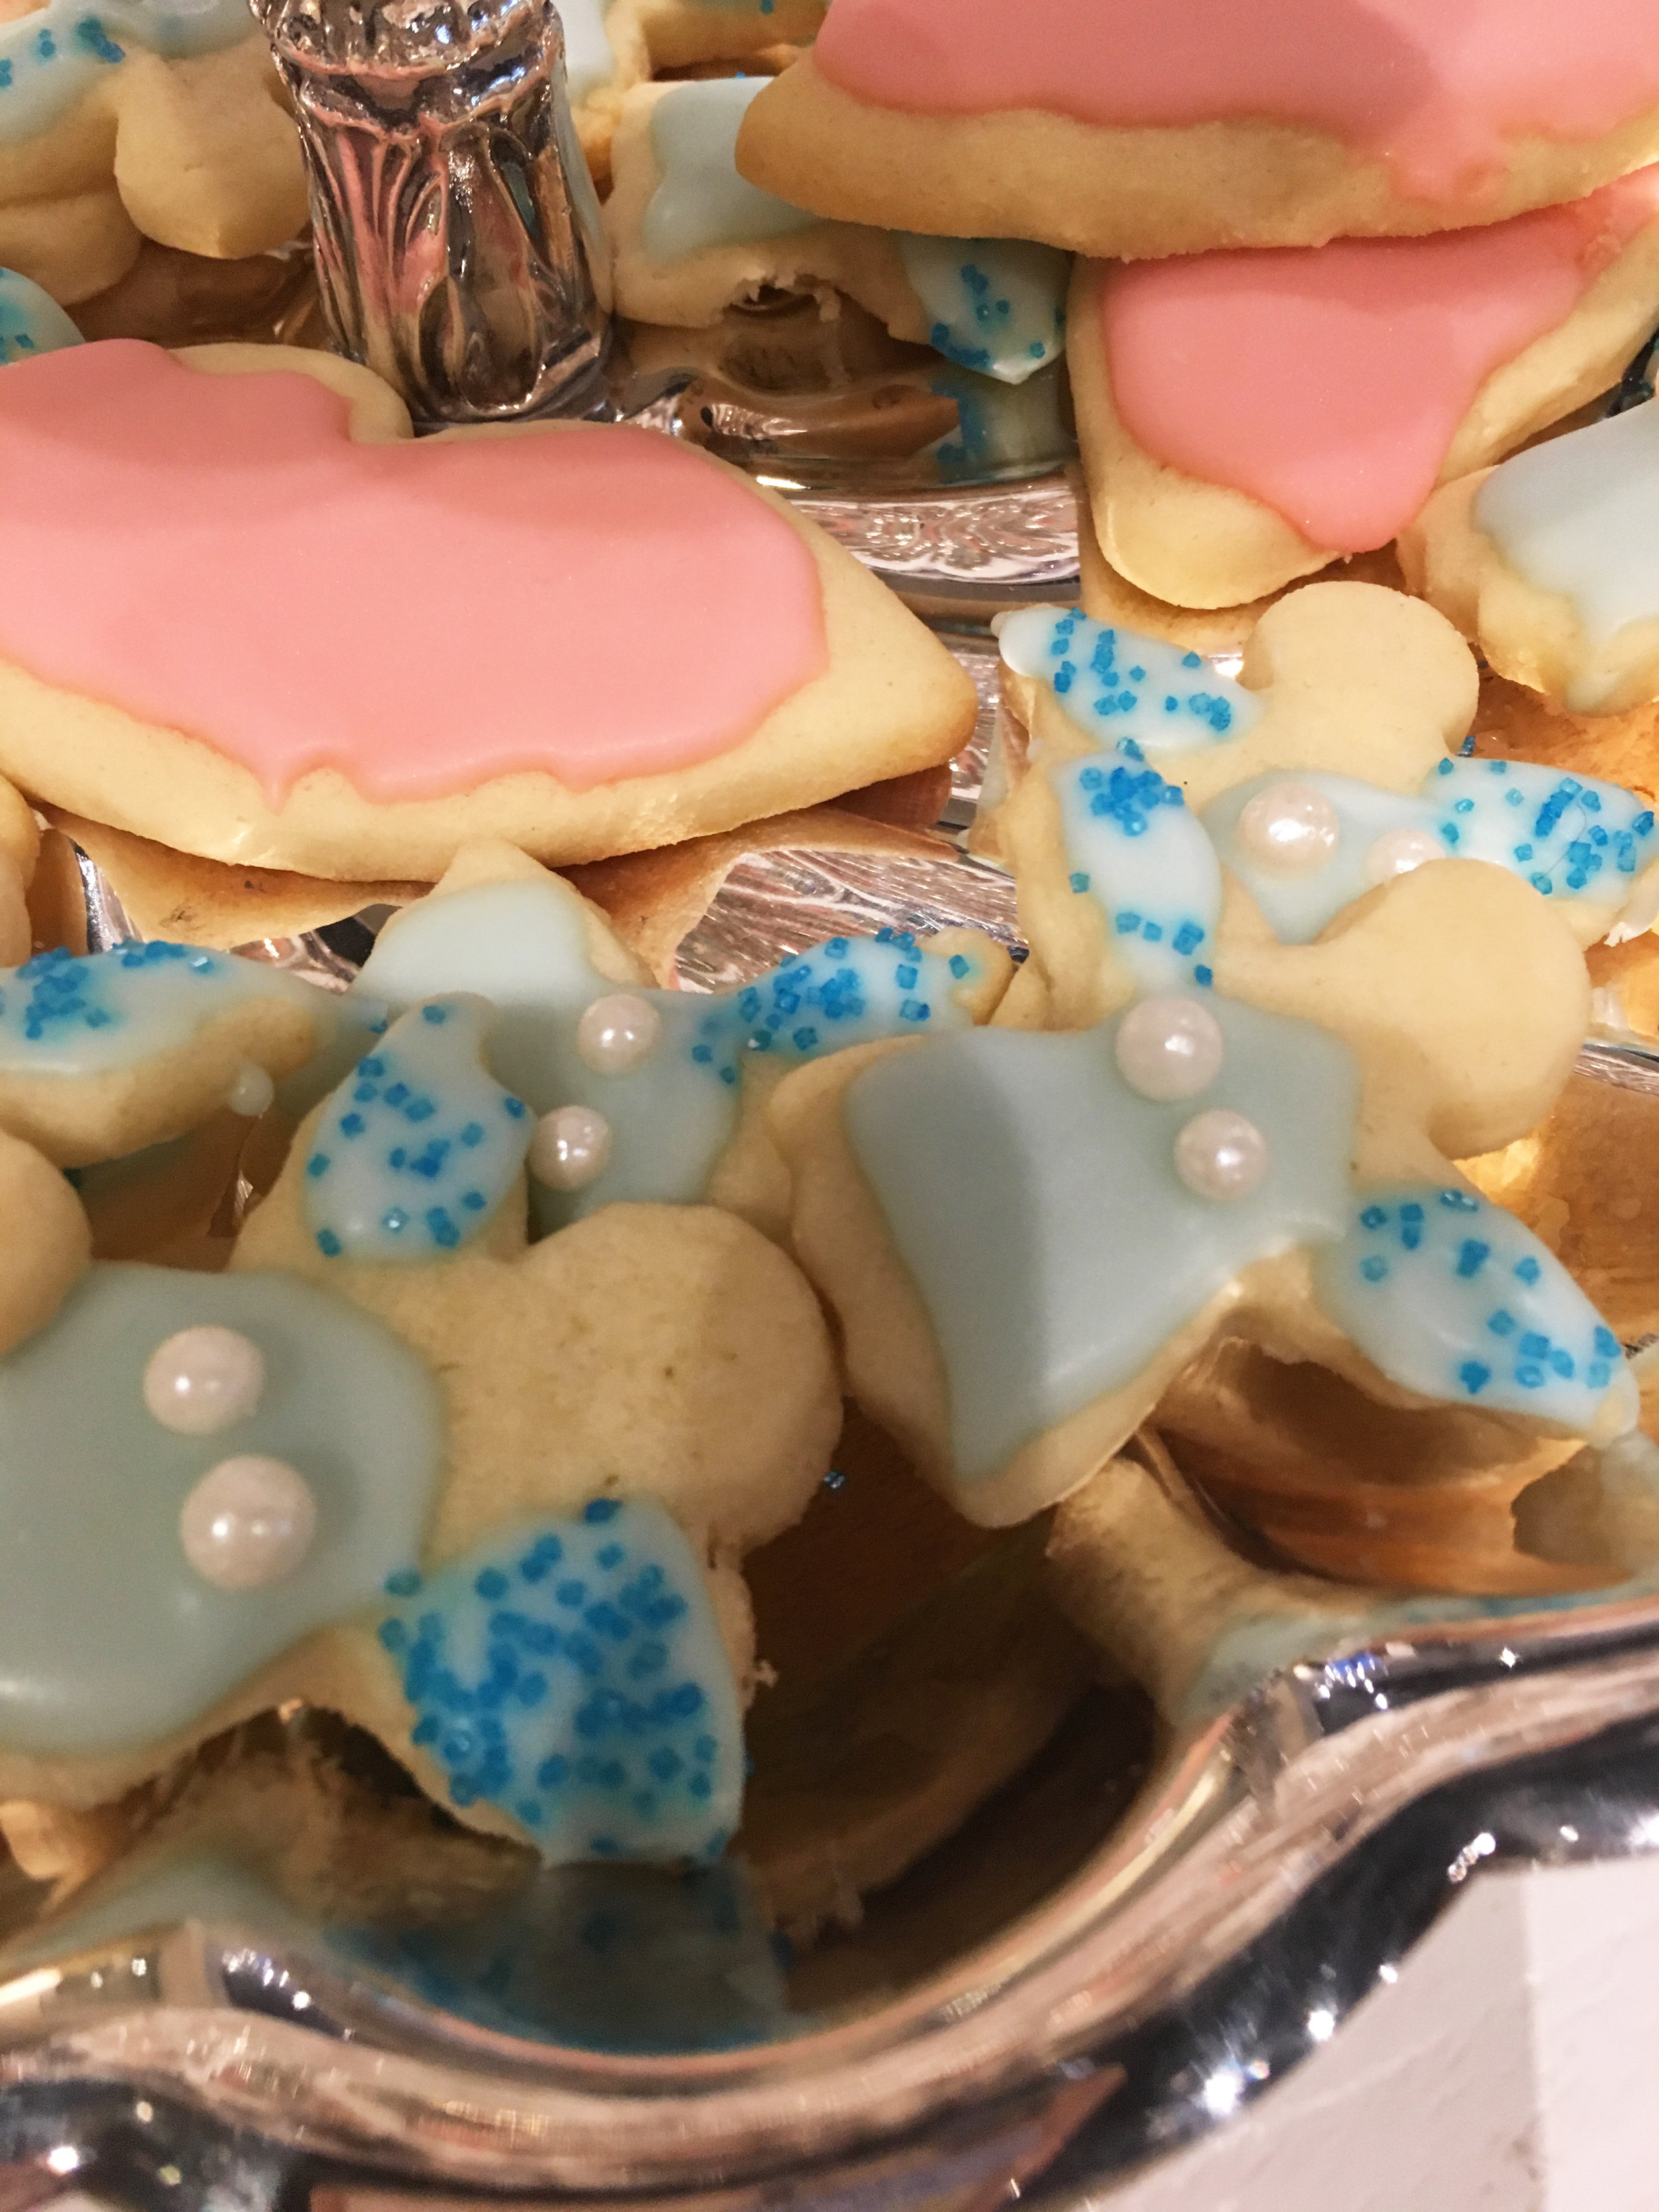 Babs' beautiful Christmas cookies. They are delicious, I've tried them myself, and are easy to make!